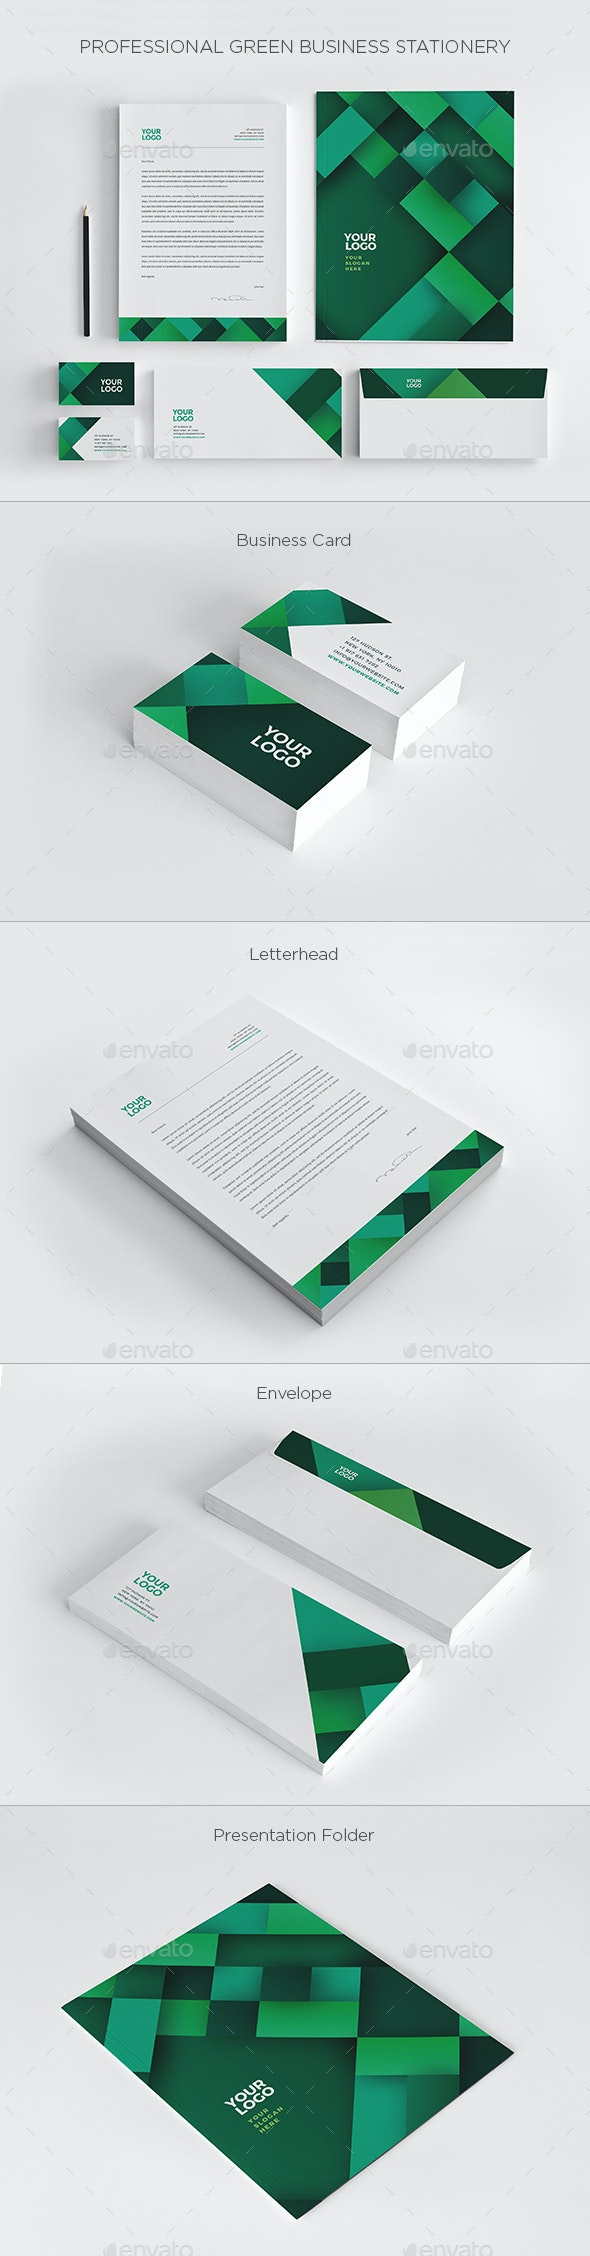 Professional Green Business Stationery - Stationery Print Templates